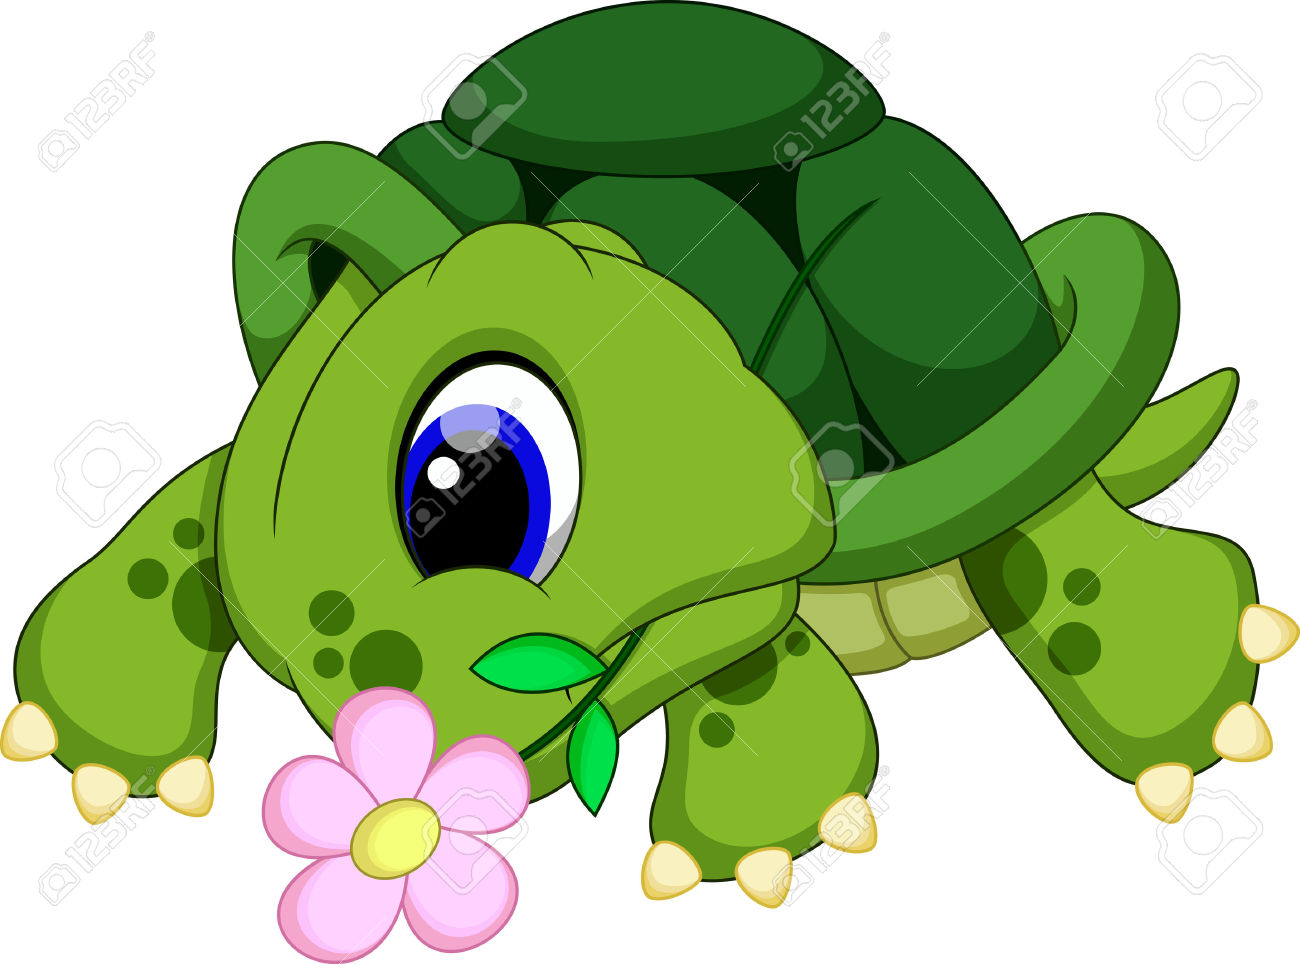 Turtle in flowers clipart 20 free Cliparts | Download ...